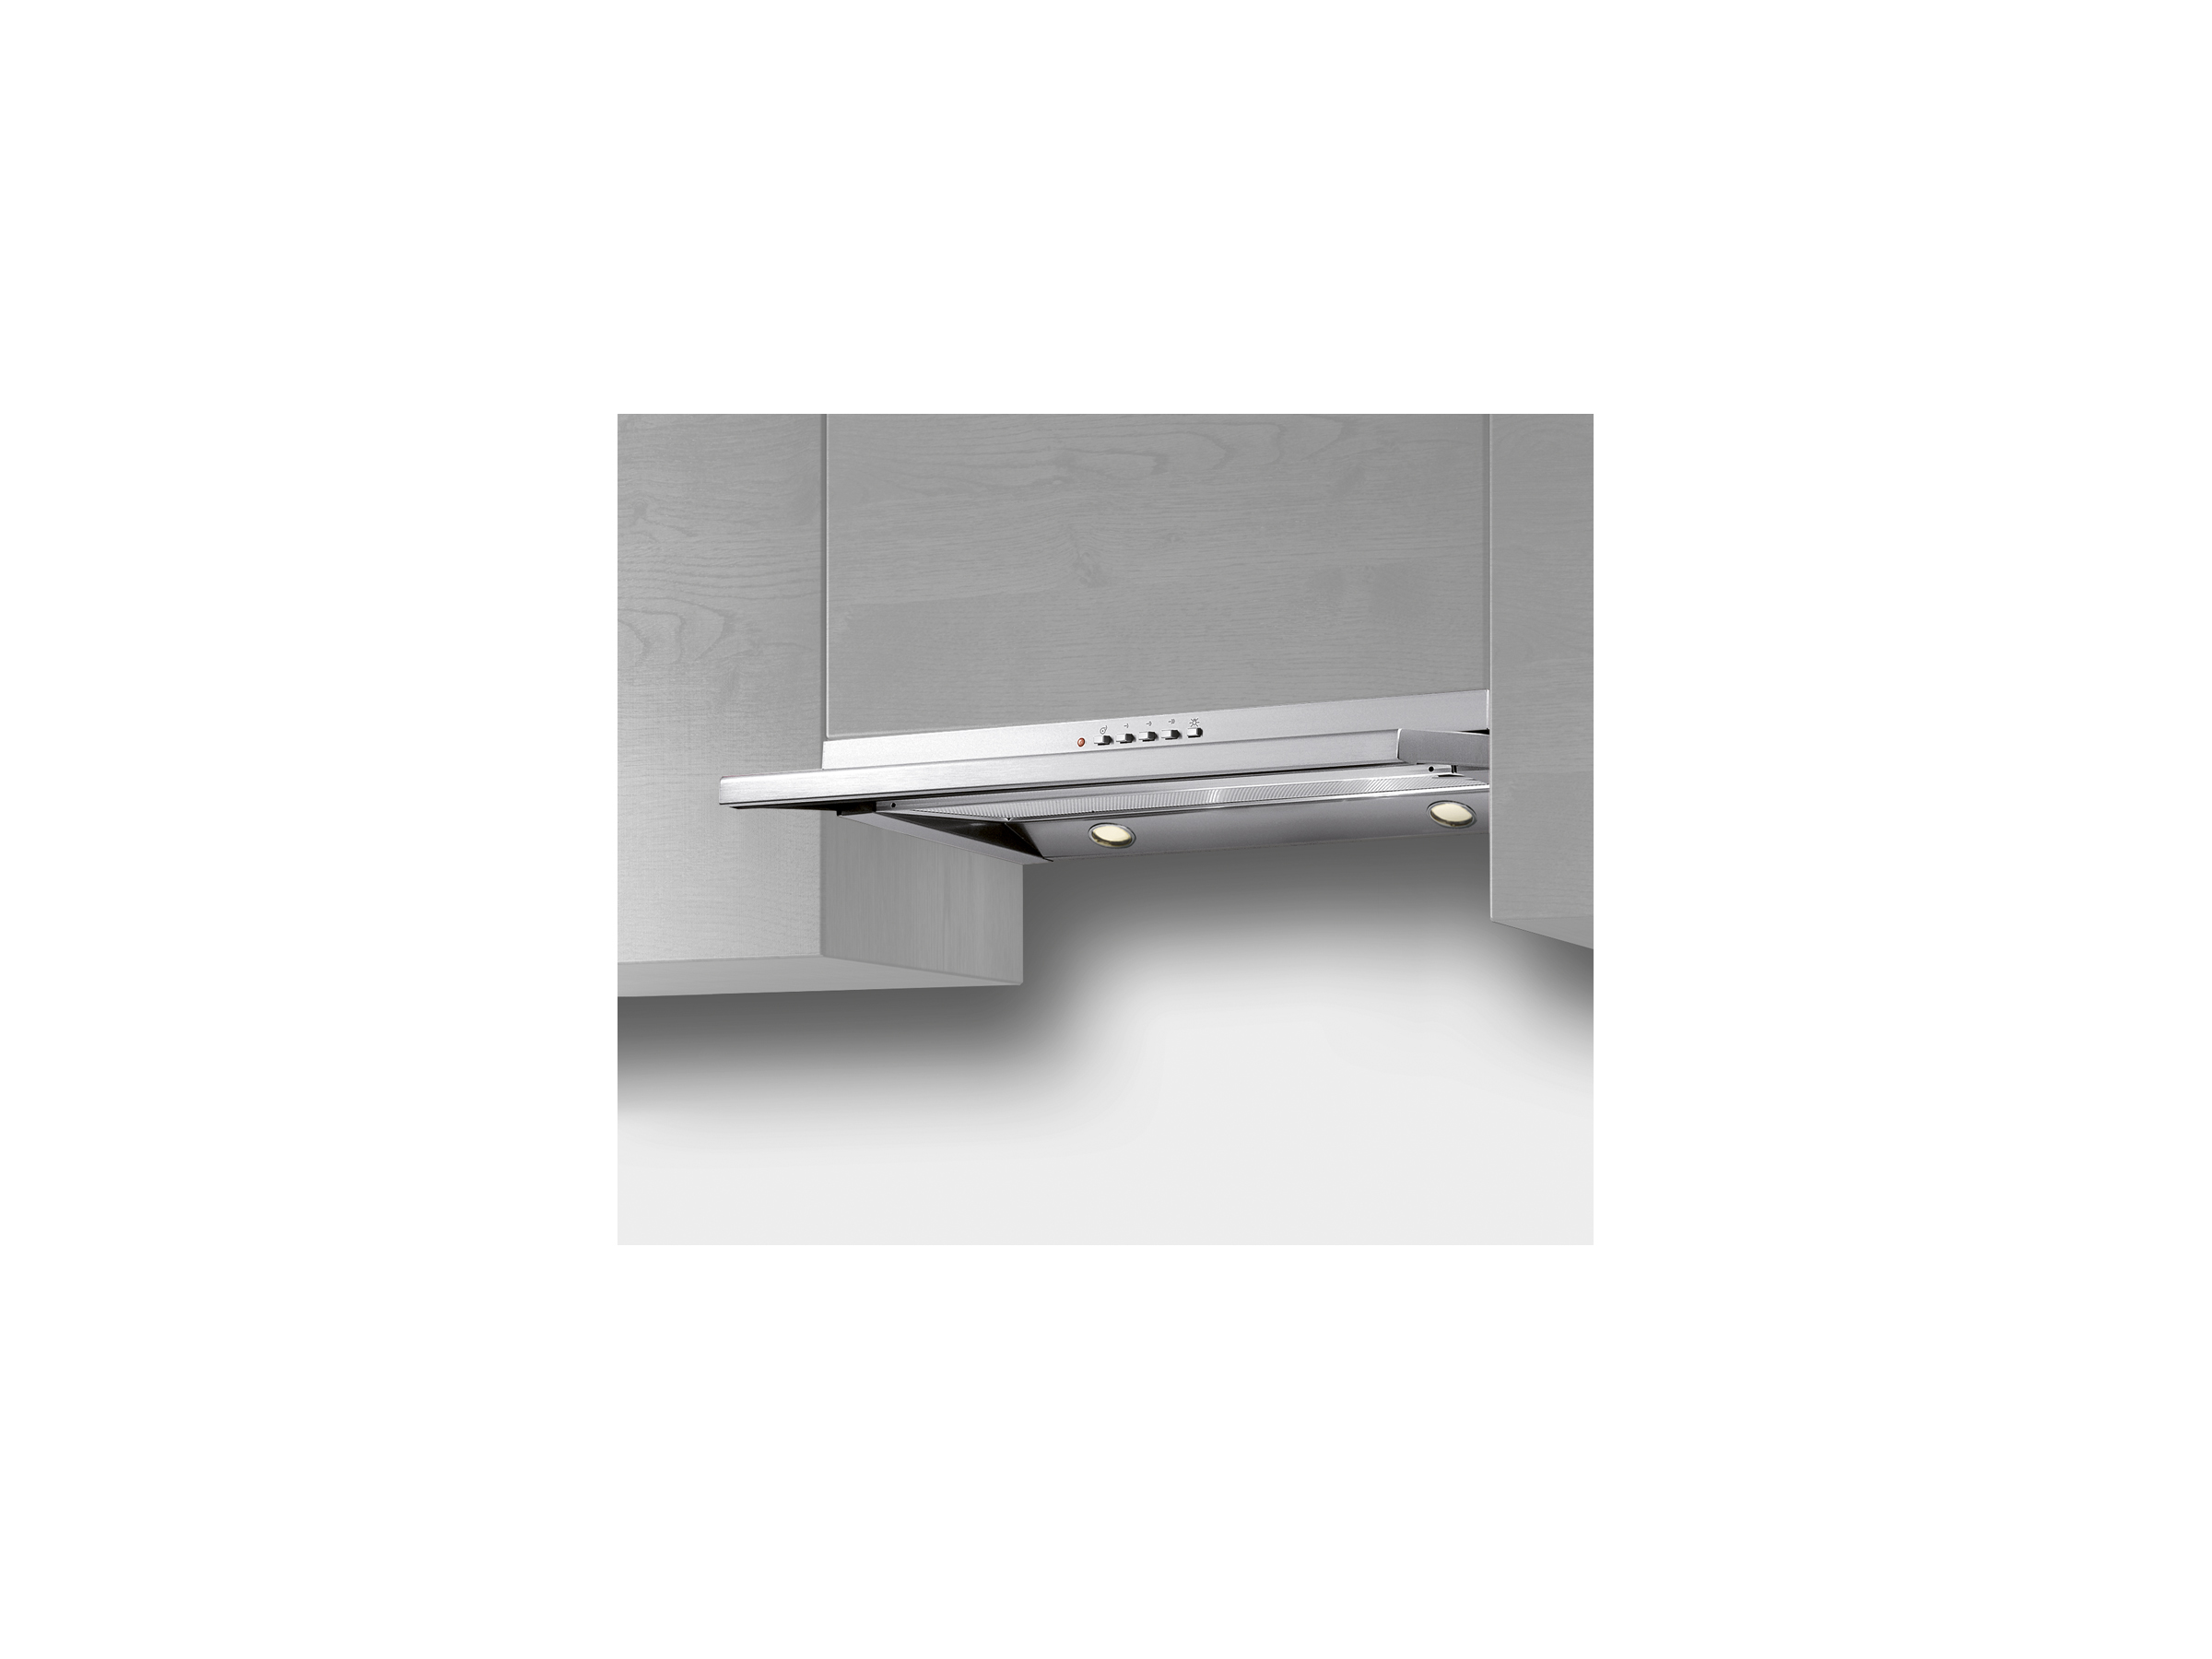 60 Undermount Telescopic Hood | Bertazzoni La Germania - Stainless